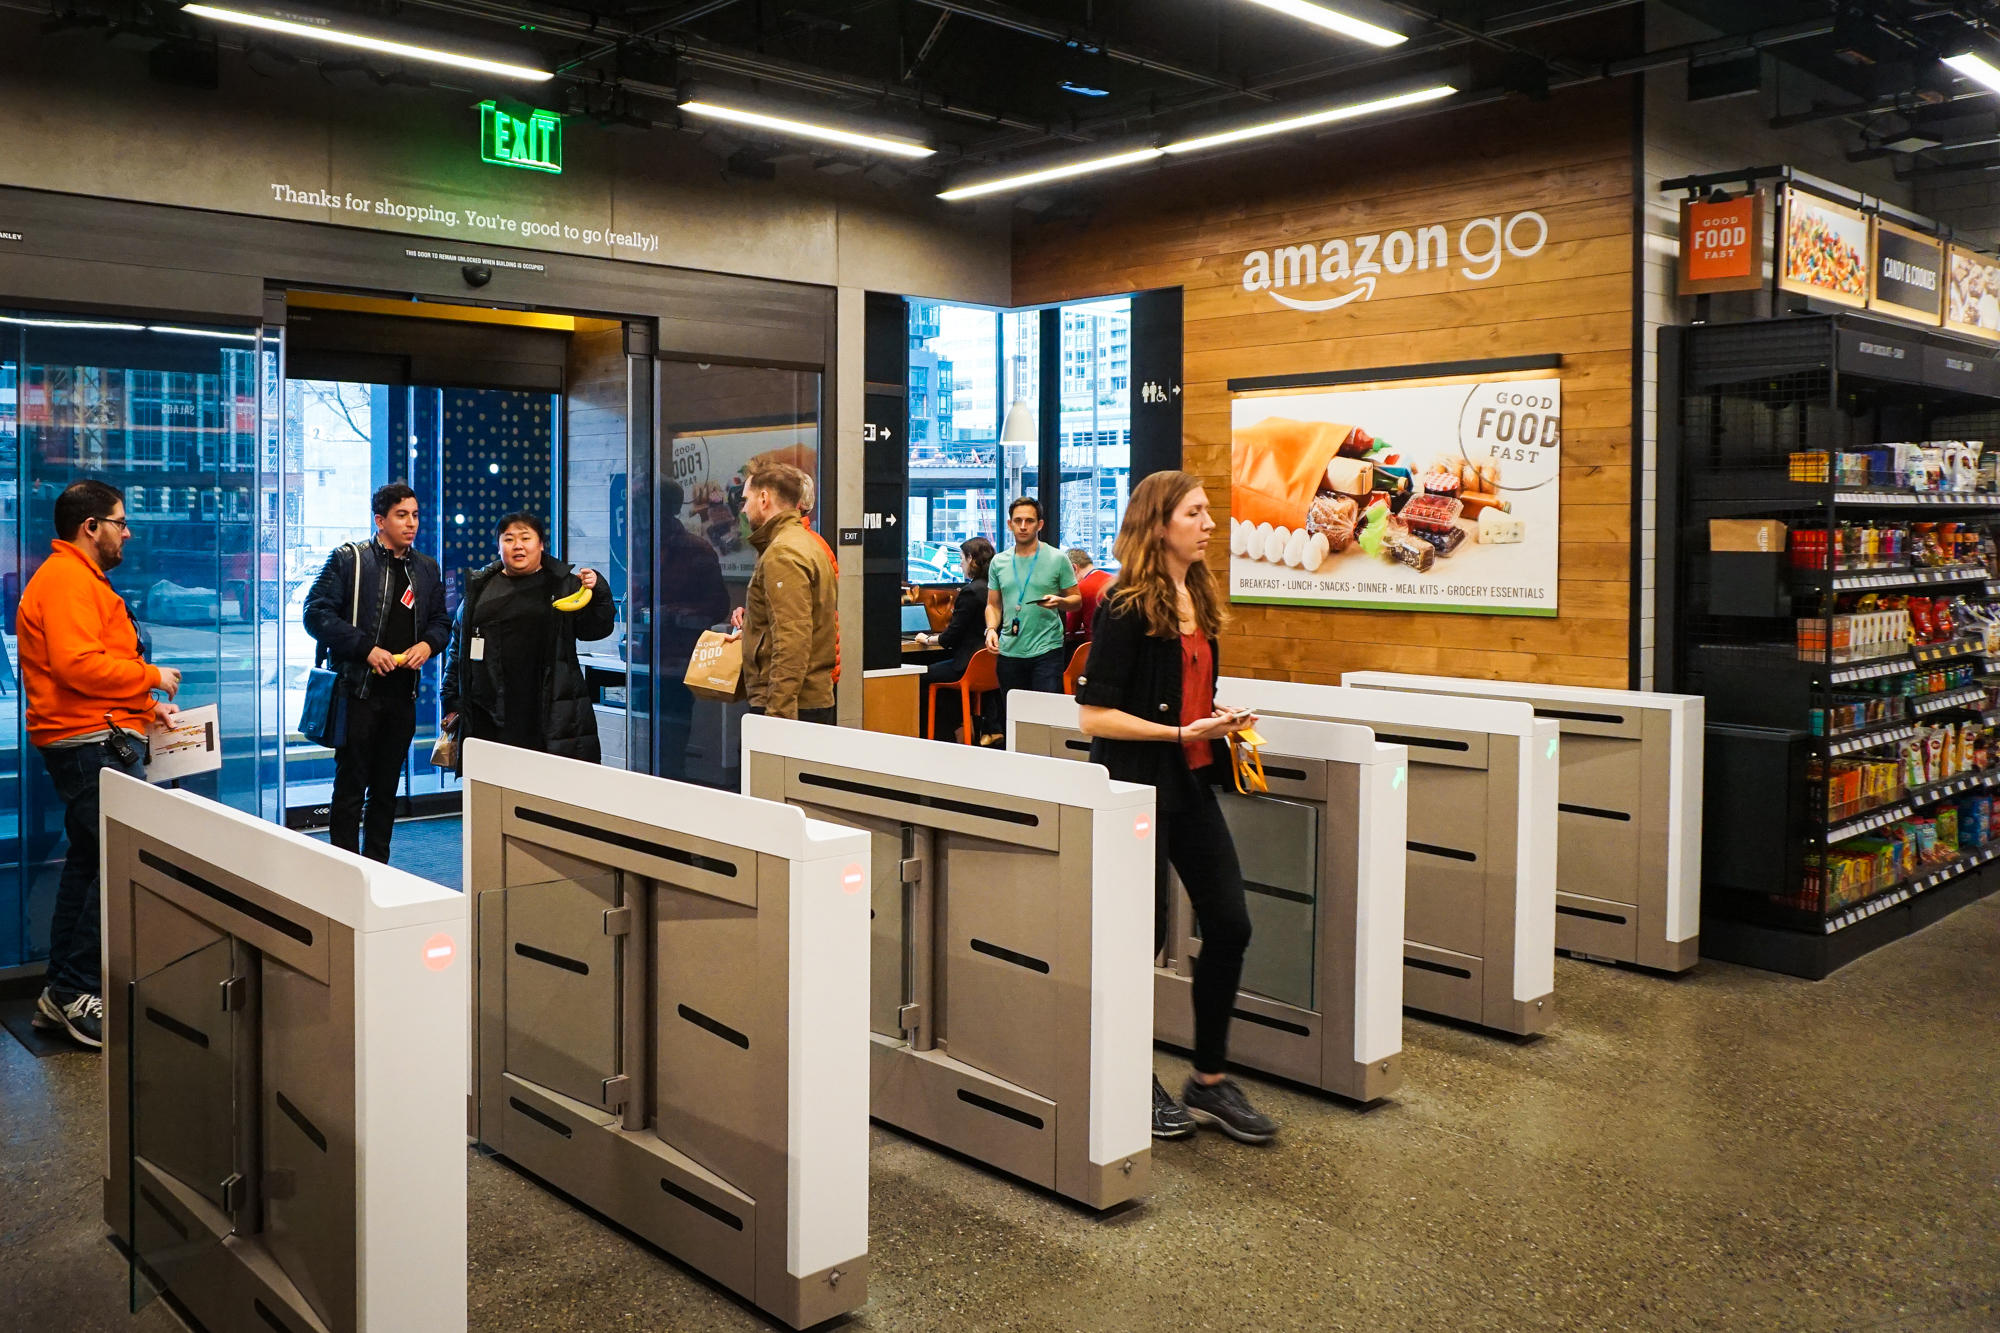 A customer enters the Amazon Go store.